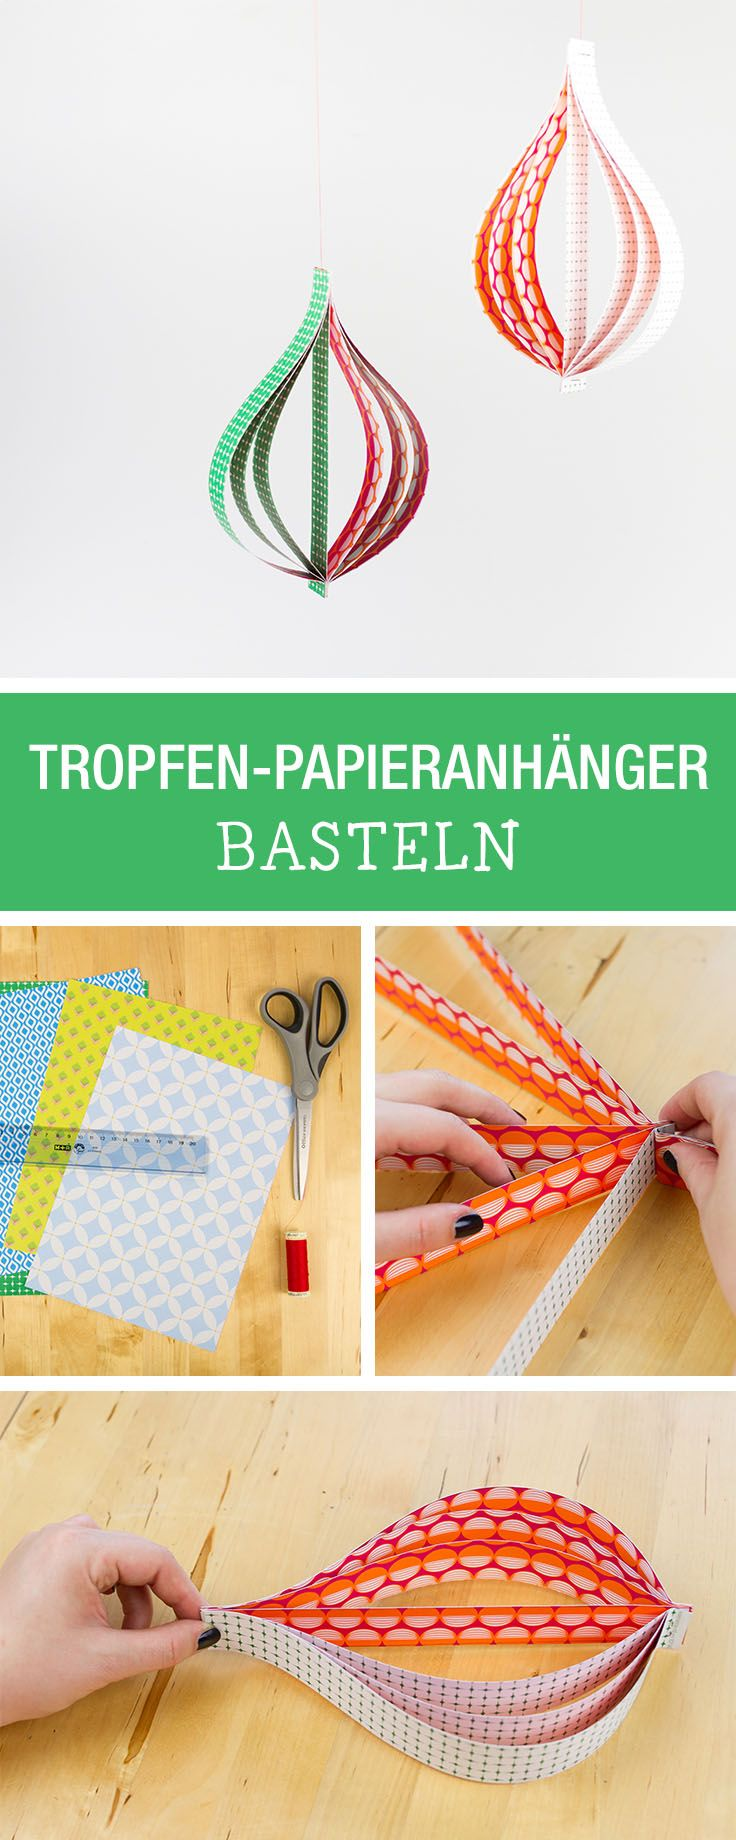 Baumschmuck basteln: Tropfen-Papieranhänger aus buntem Papier / christmas tree decoration made of colorful paper via DaWanda.com